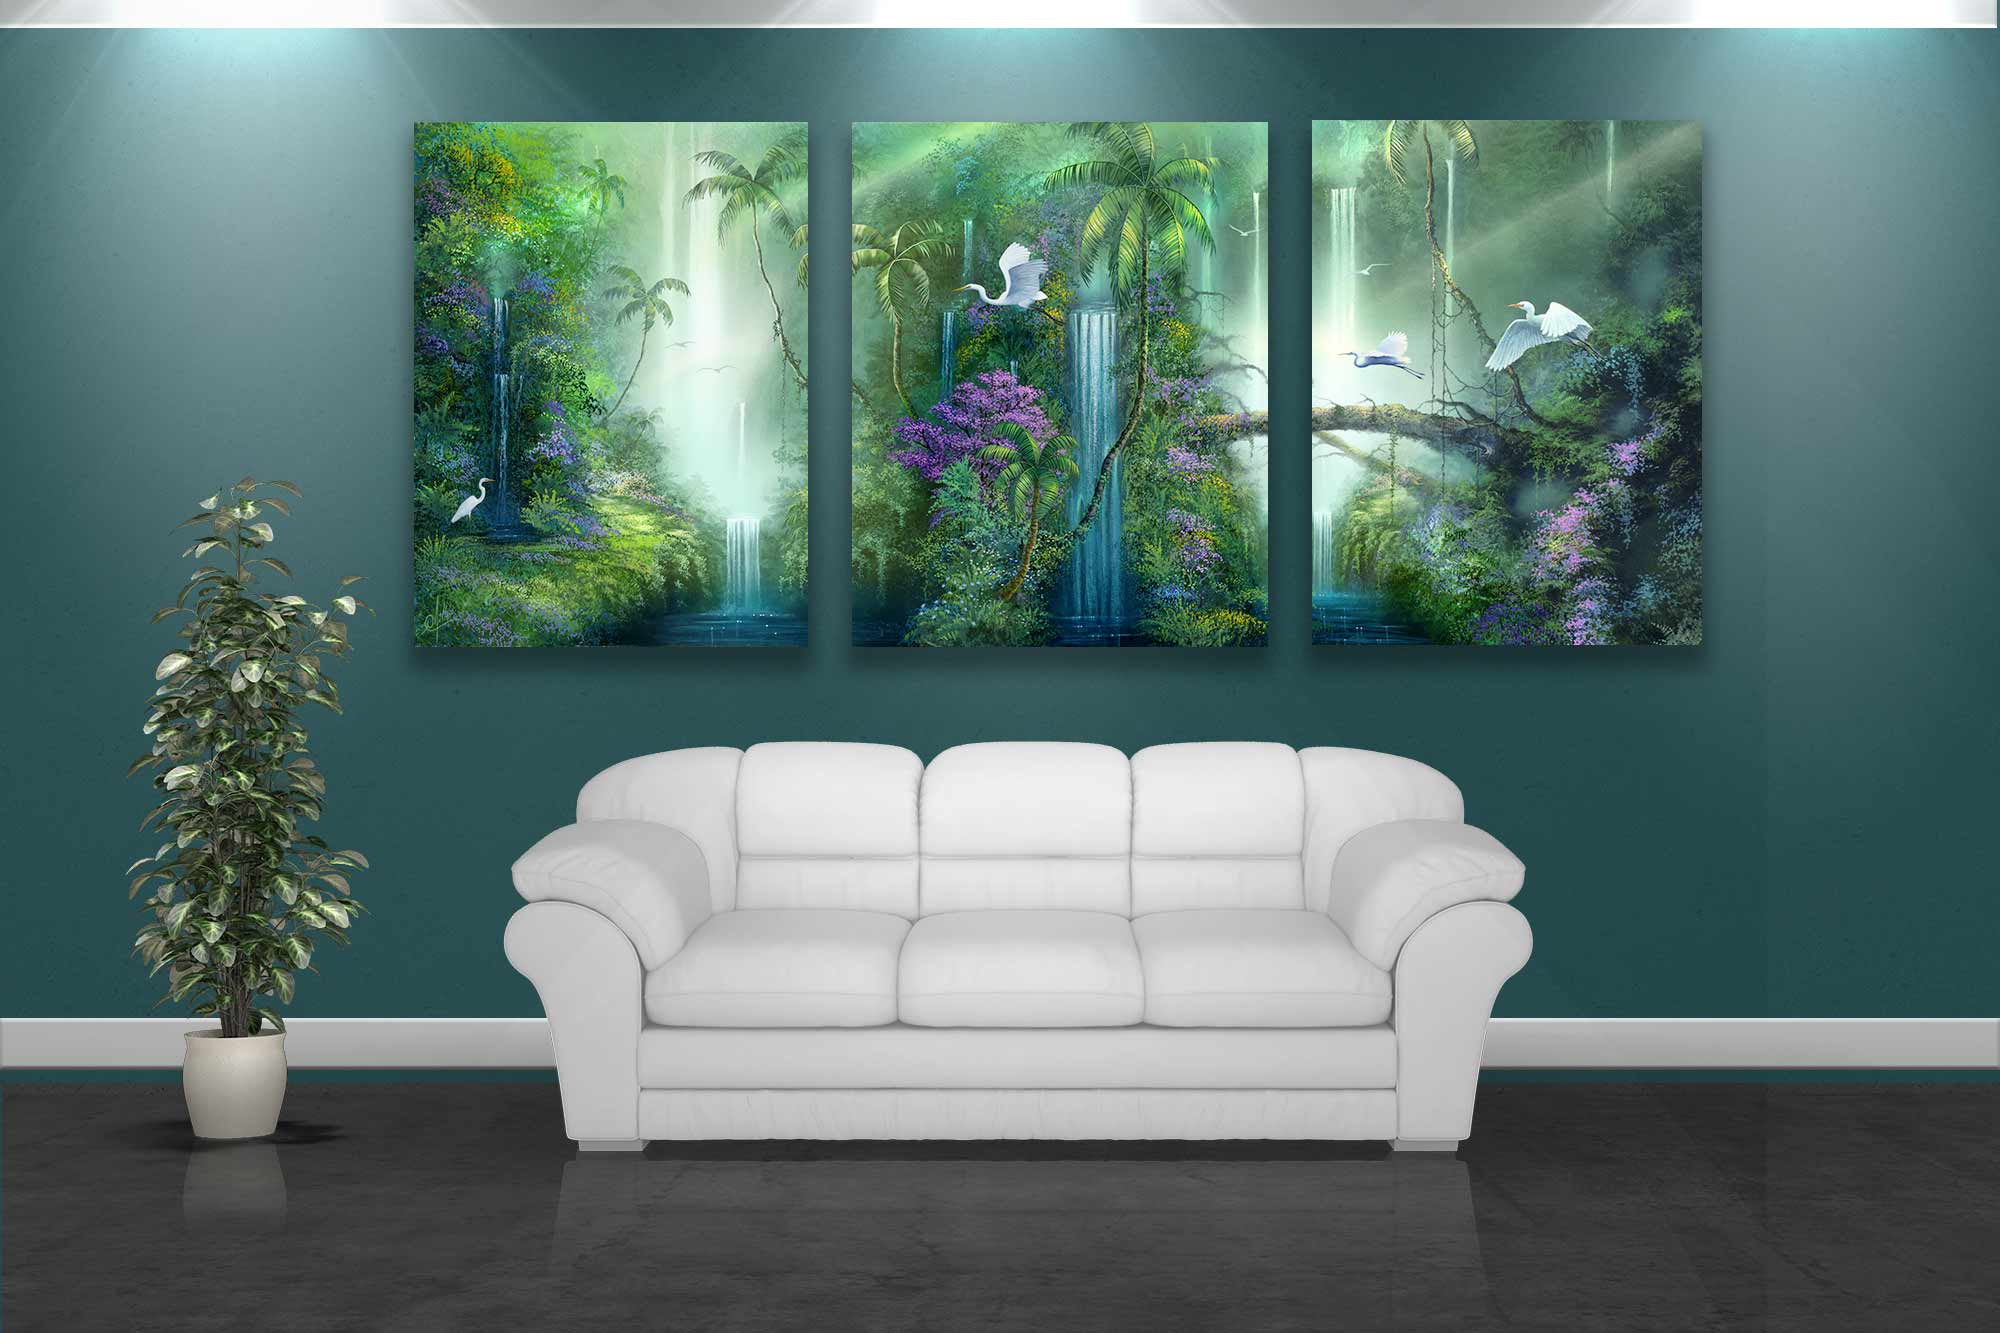 Forest paintings by artist david miller A wall painting